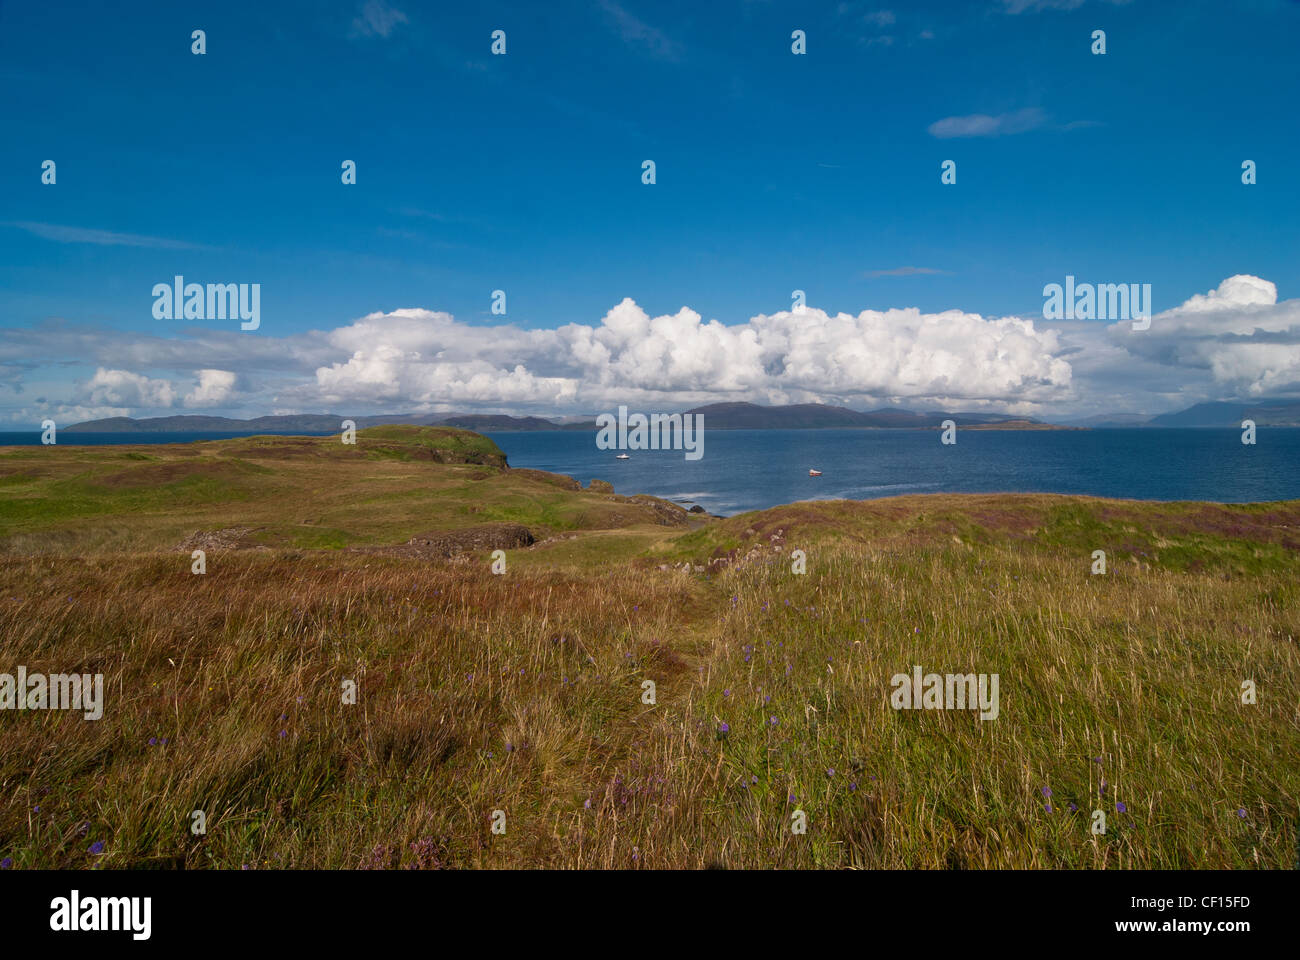 On the Island of Staffa looking out to sea with a band of cloud in the horizon over Ulva and Mull in the distance - Stock Image